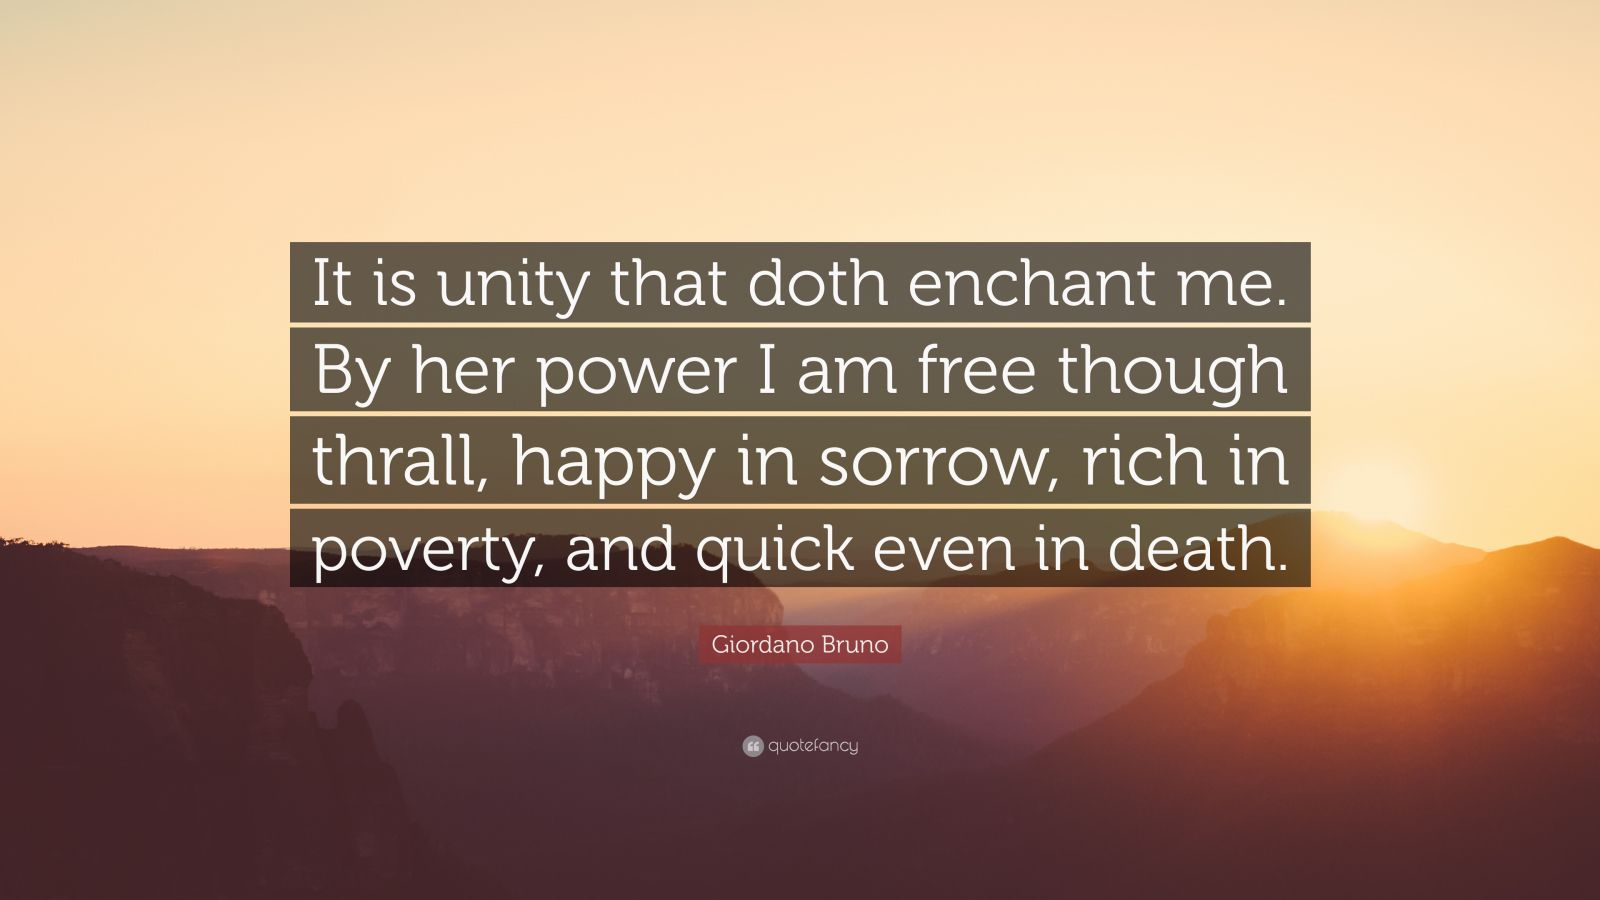 """Giordano Bruno Quote: """"It is unity that doth enchant me. By her power I am free though thrall, happy in sorrow, rich in poverty, and quick even in death."""""""